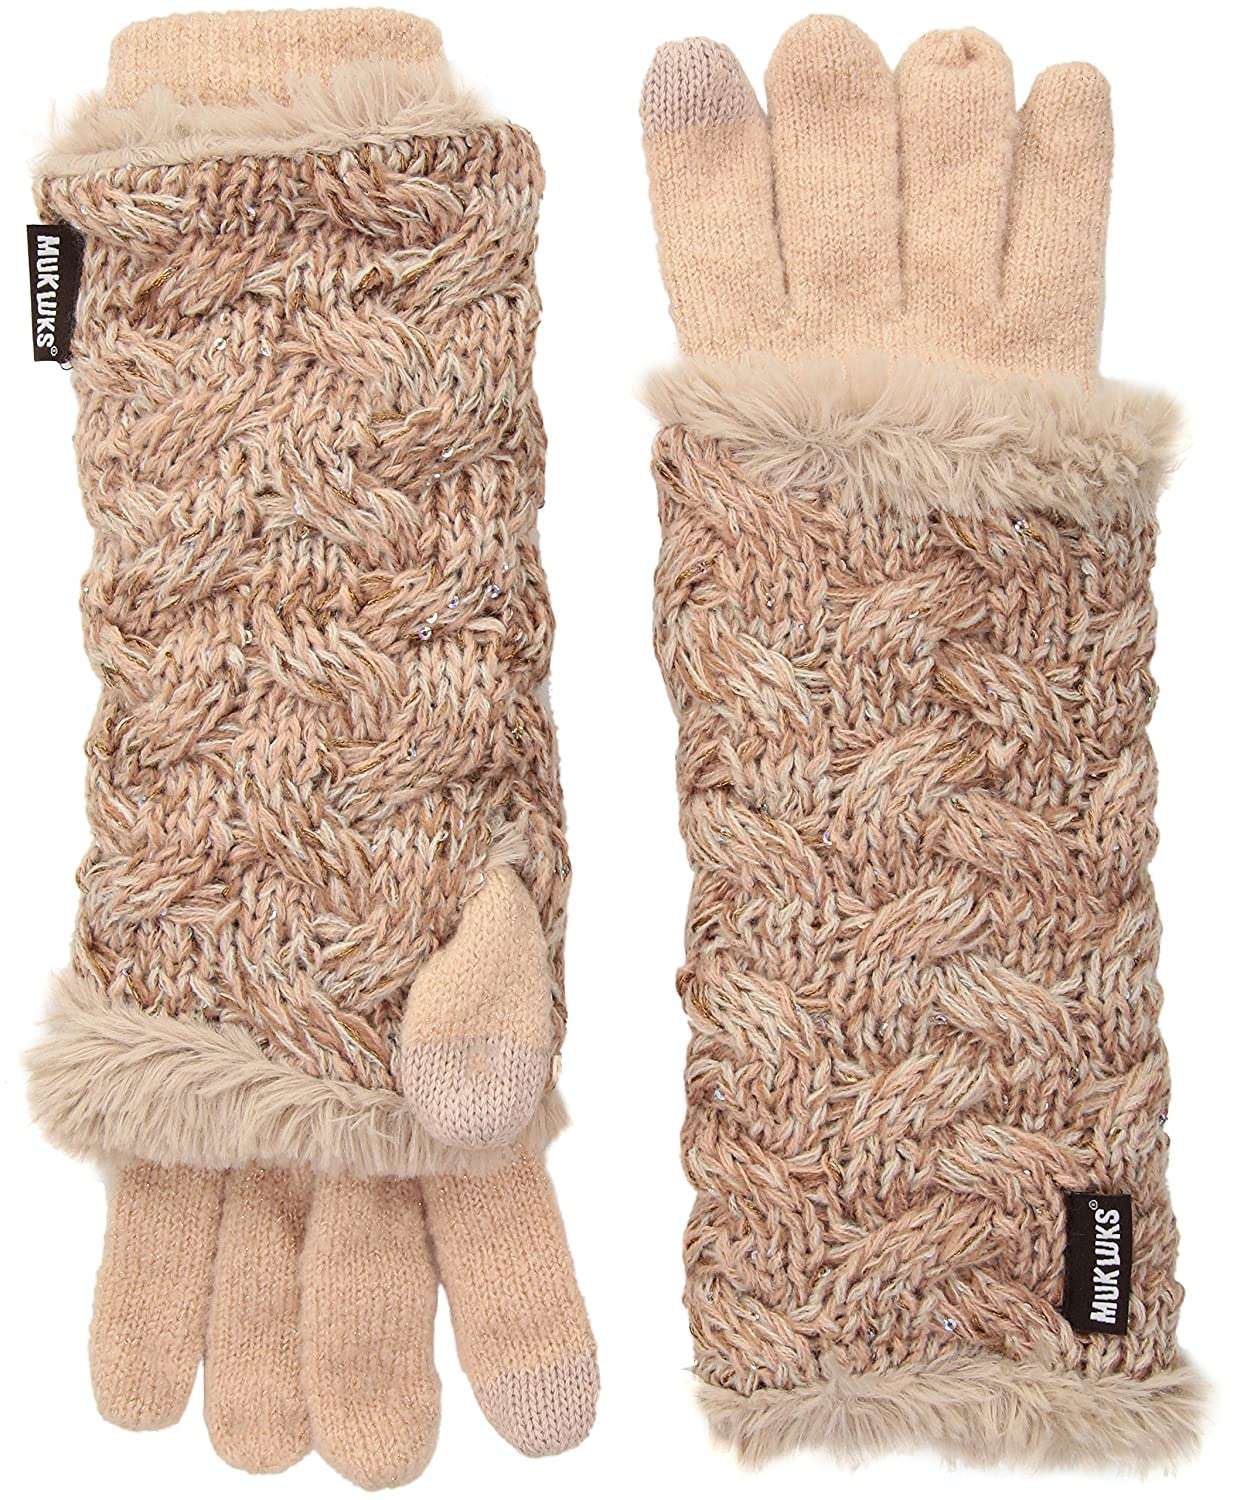 Muk Luks Women's You Are So Beautiful Three-In-One Gloves-Wavy Cable Fairisle One Size 0034504102-OS